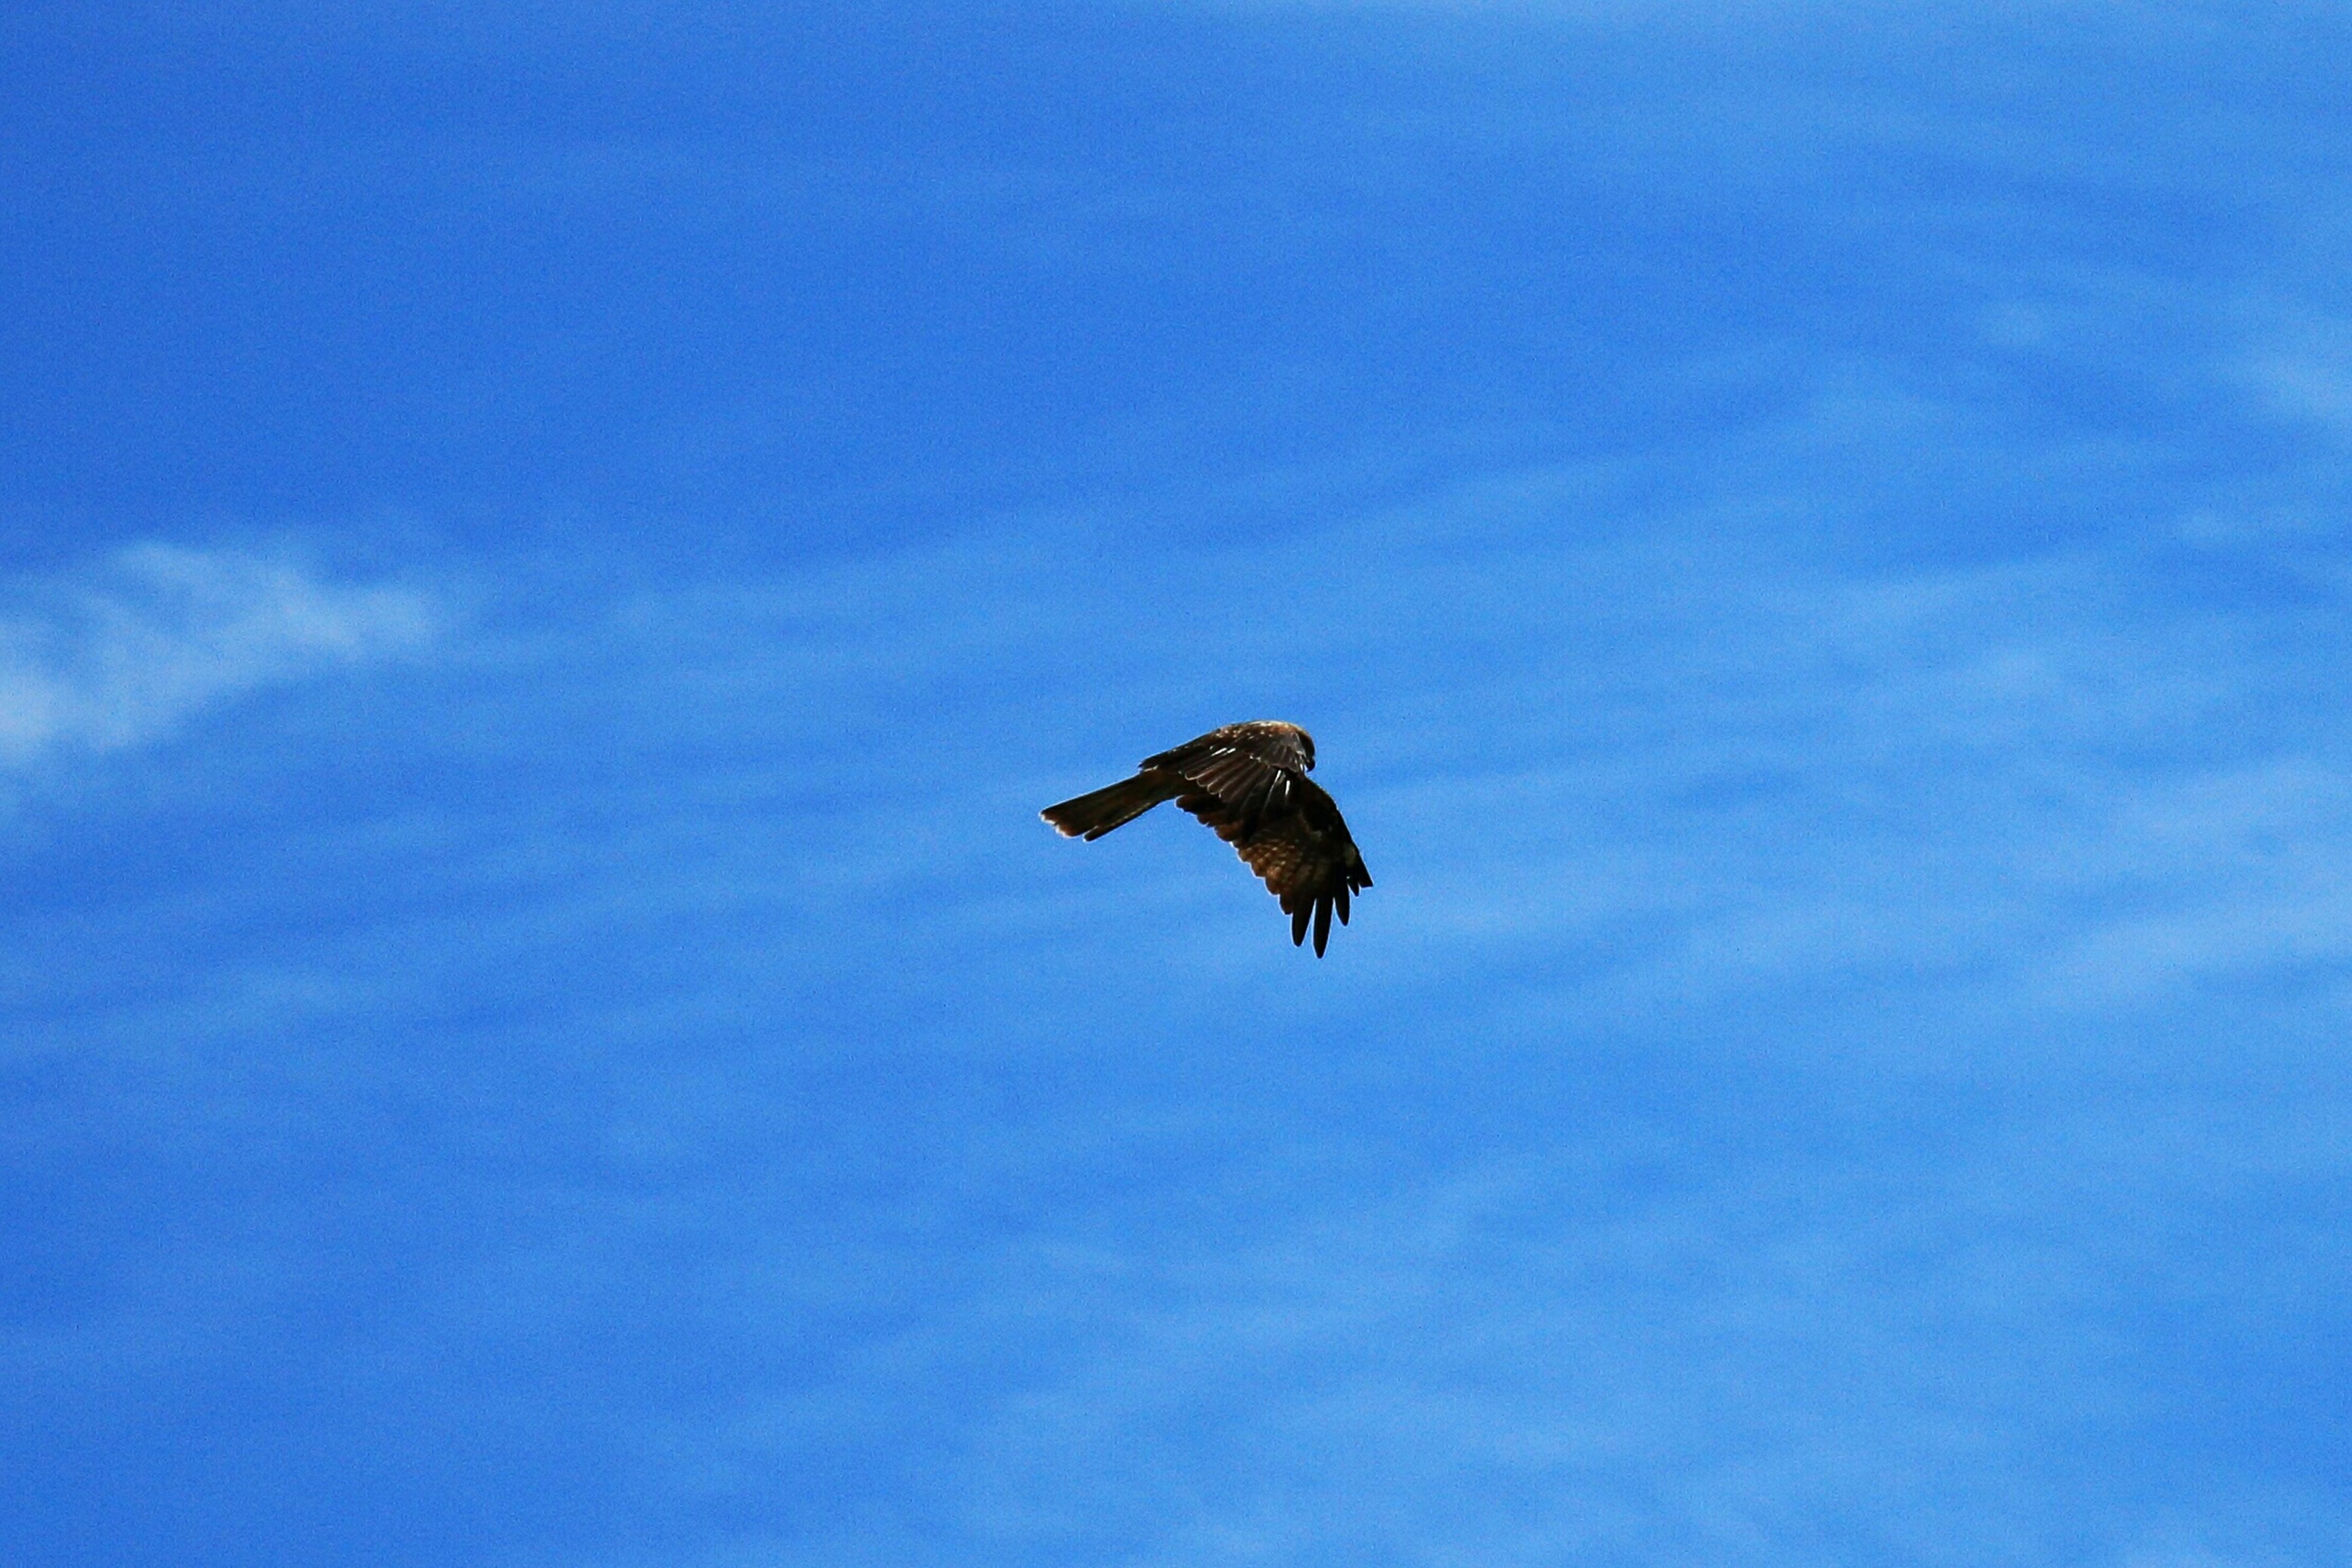 low angle view, flying, bird, animal themes, one animal, mid-air, animals in the wild, sky, spread wings, wildlife, blue, nature, cloud - sky, silhouette, outdoors, freedom, no people, full length, on the move, day